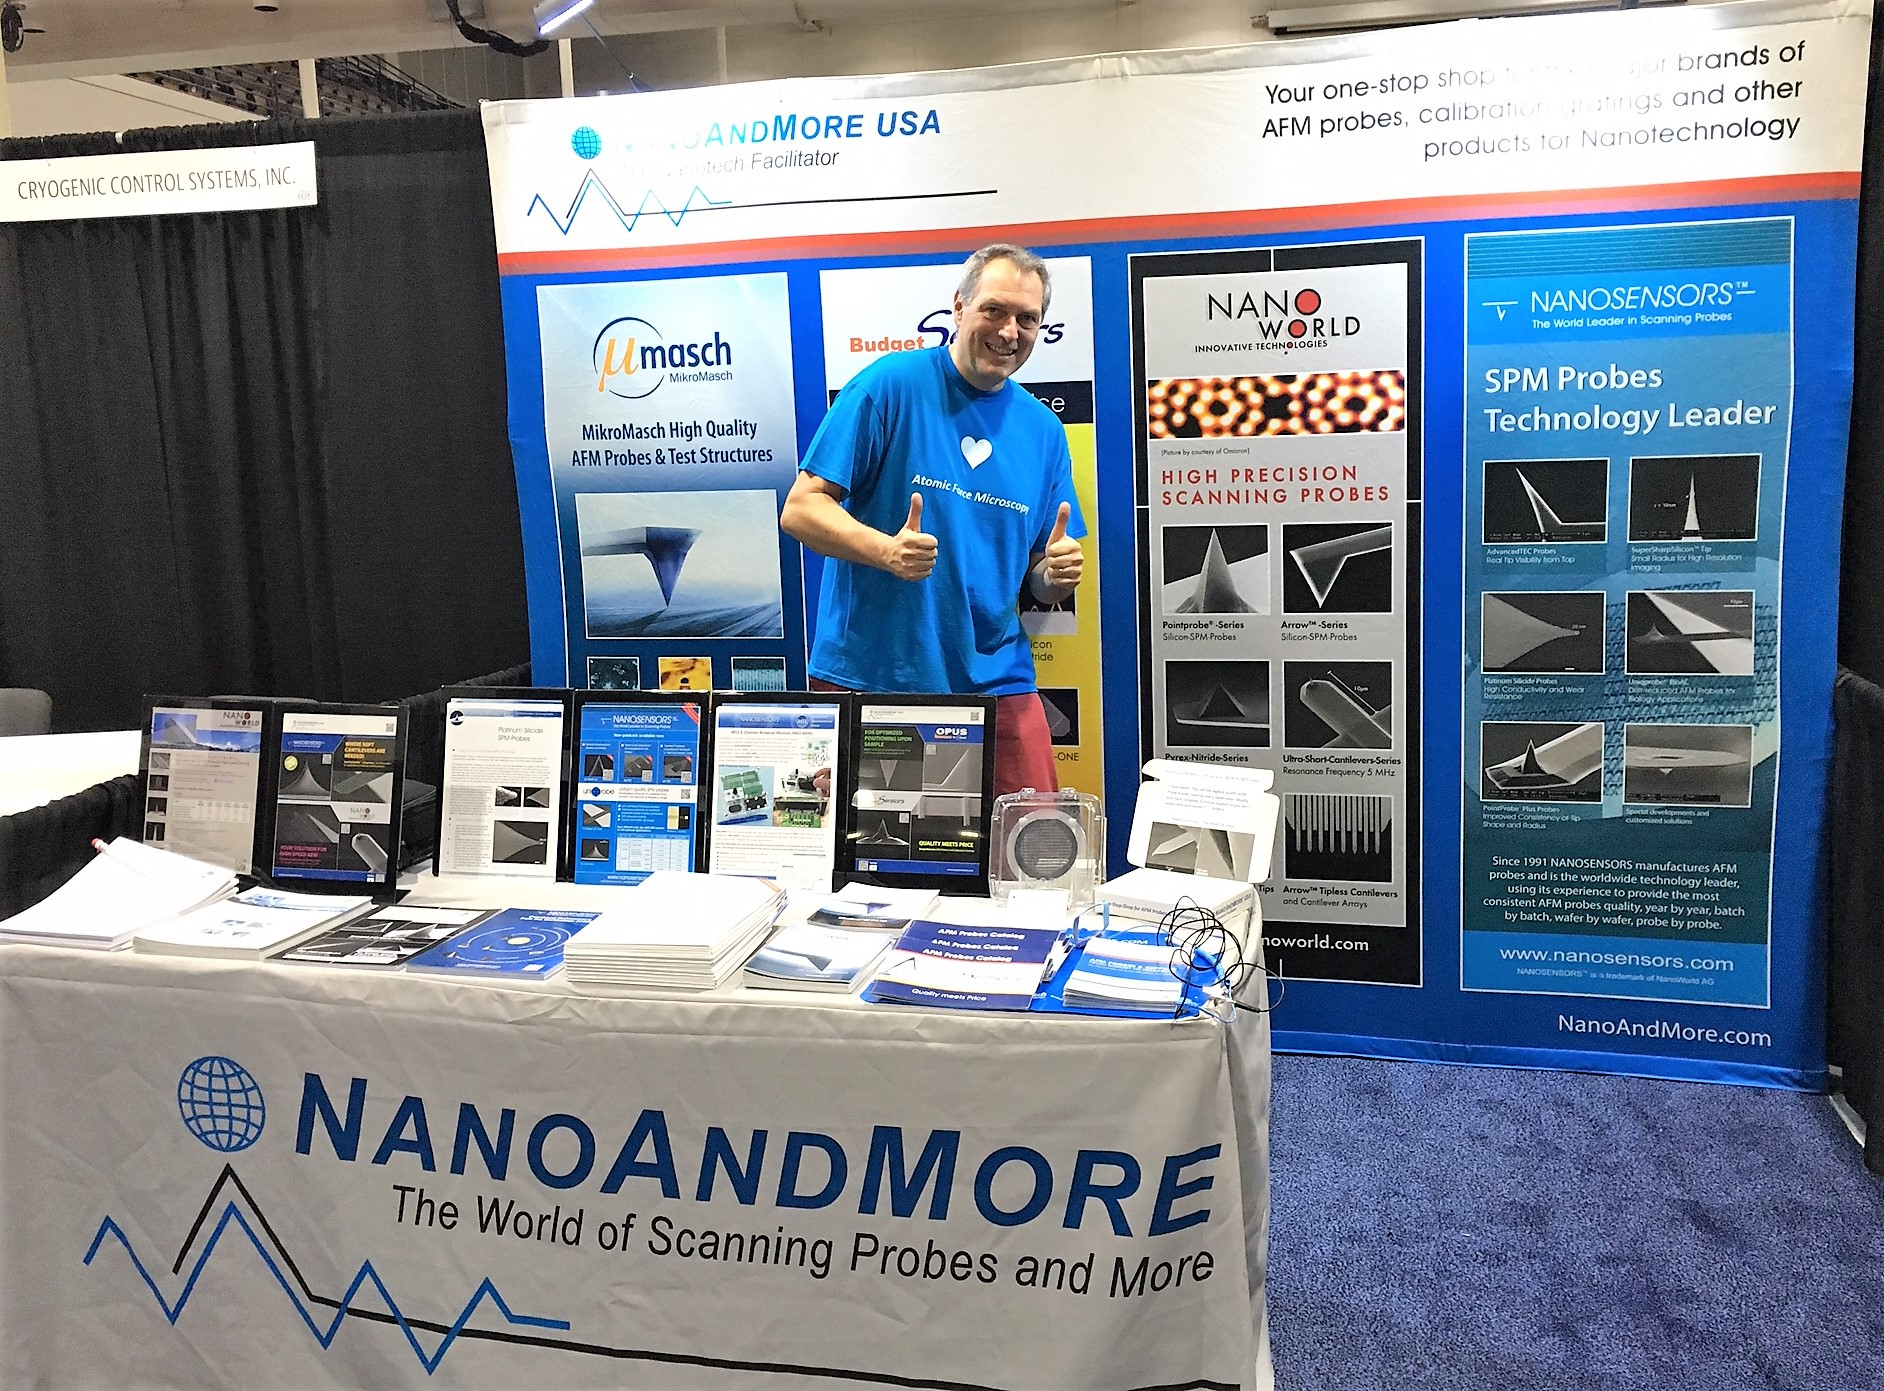 NanoWorld AFM probes CEO Manfred Detterbeck at NanoAndMore USA booth no. 610 at MRS Fall 2018